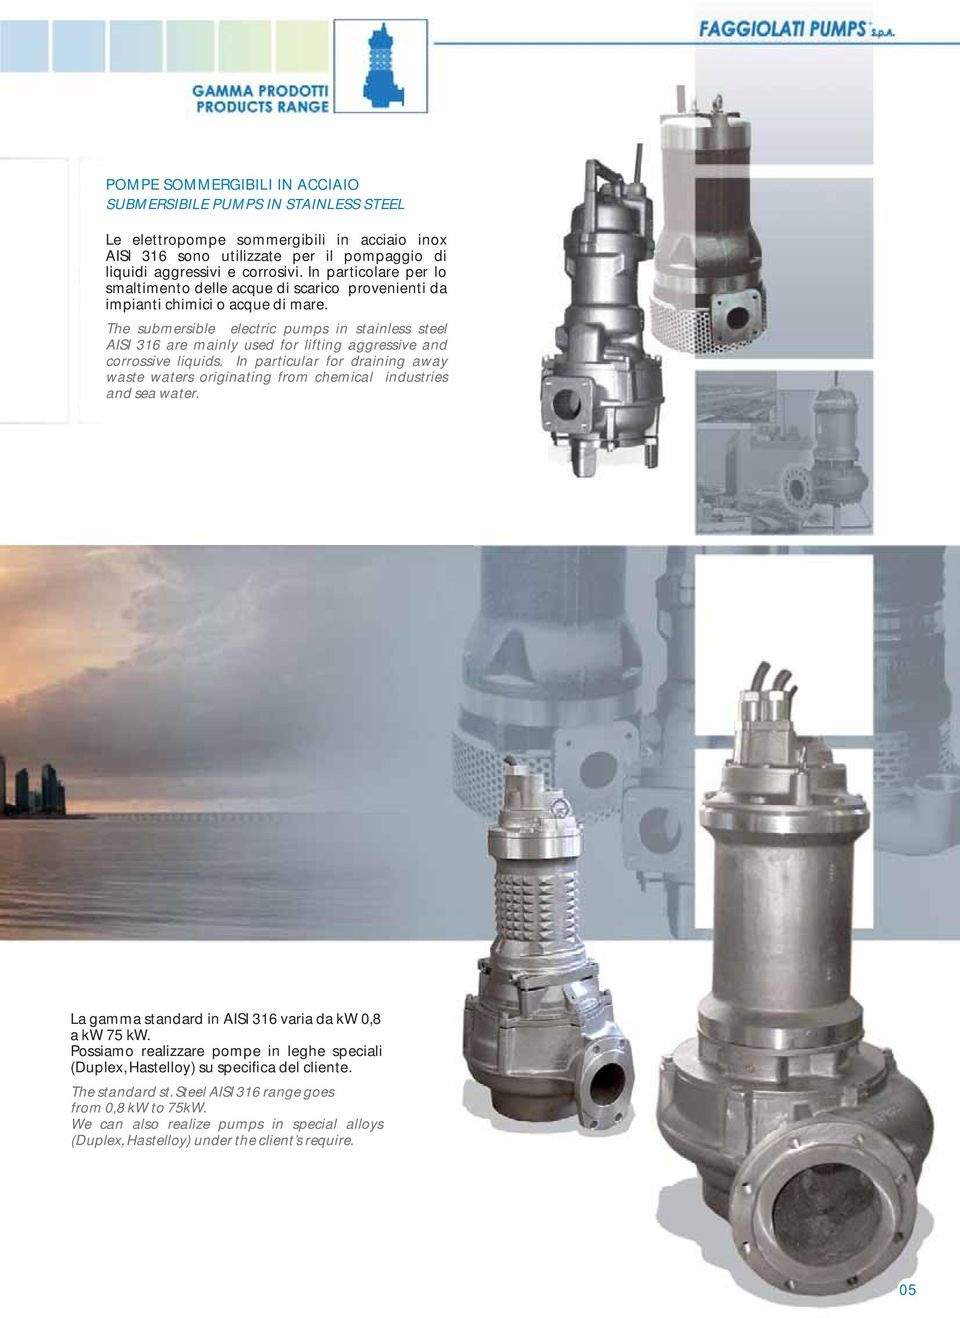 The submersible electric pumps in stainless steel AISI 316 are mainly used for lifting aggressive and corrossive liquids.